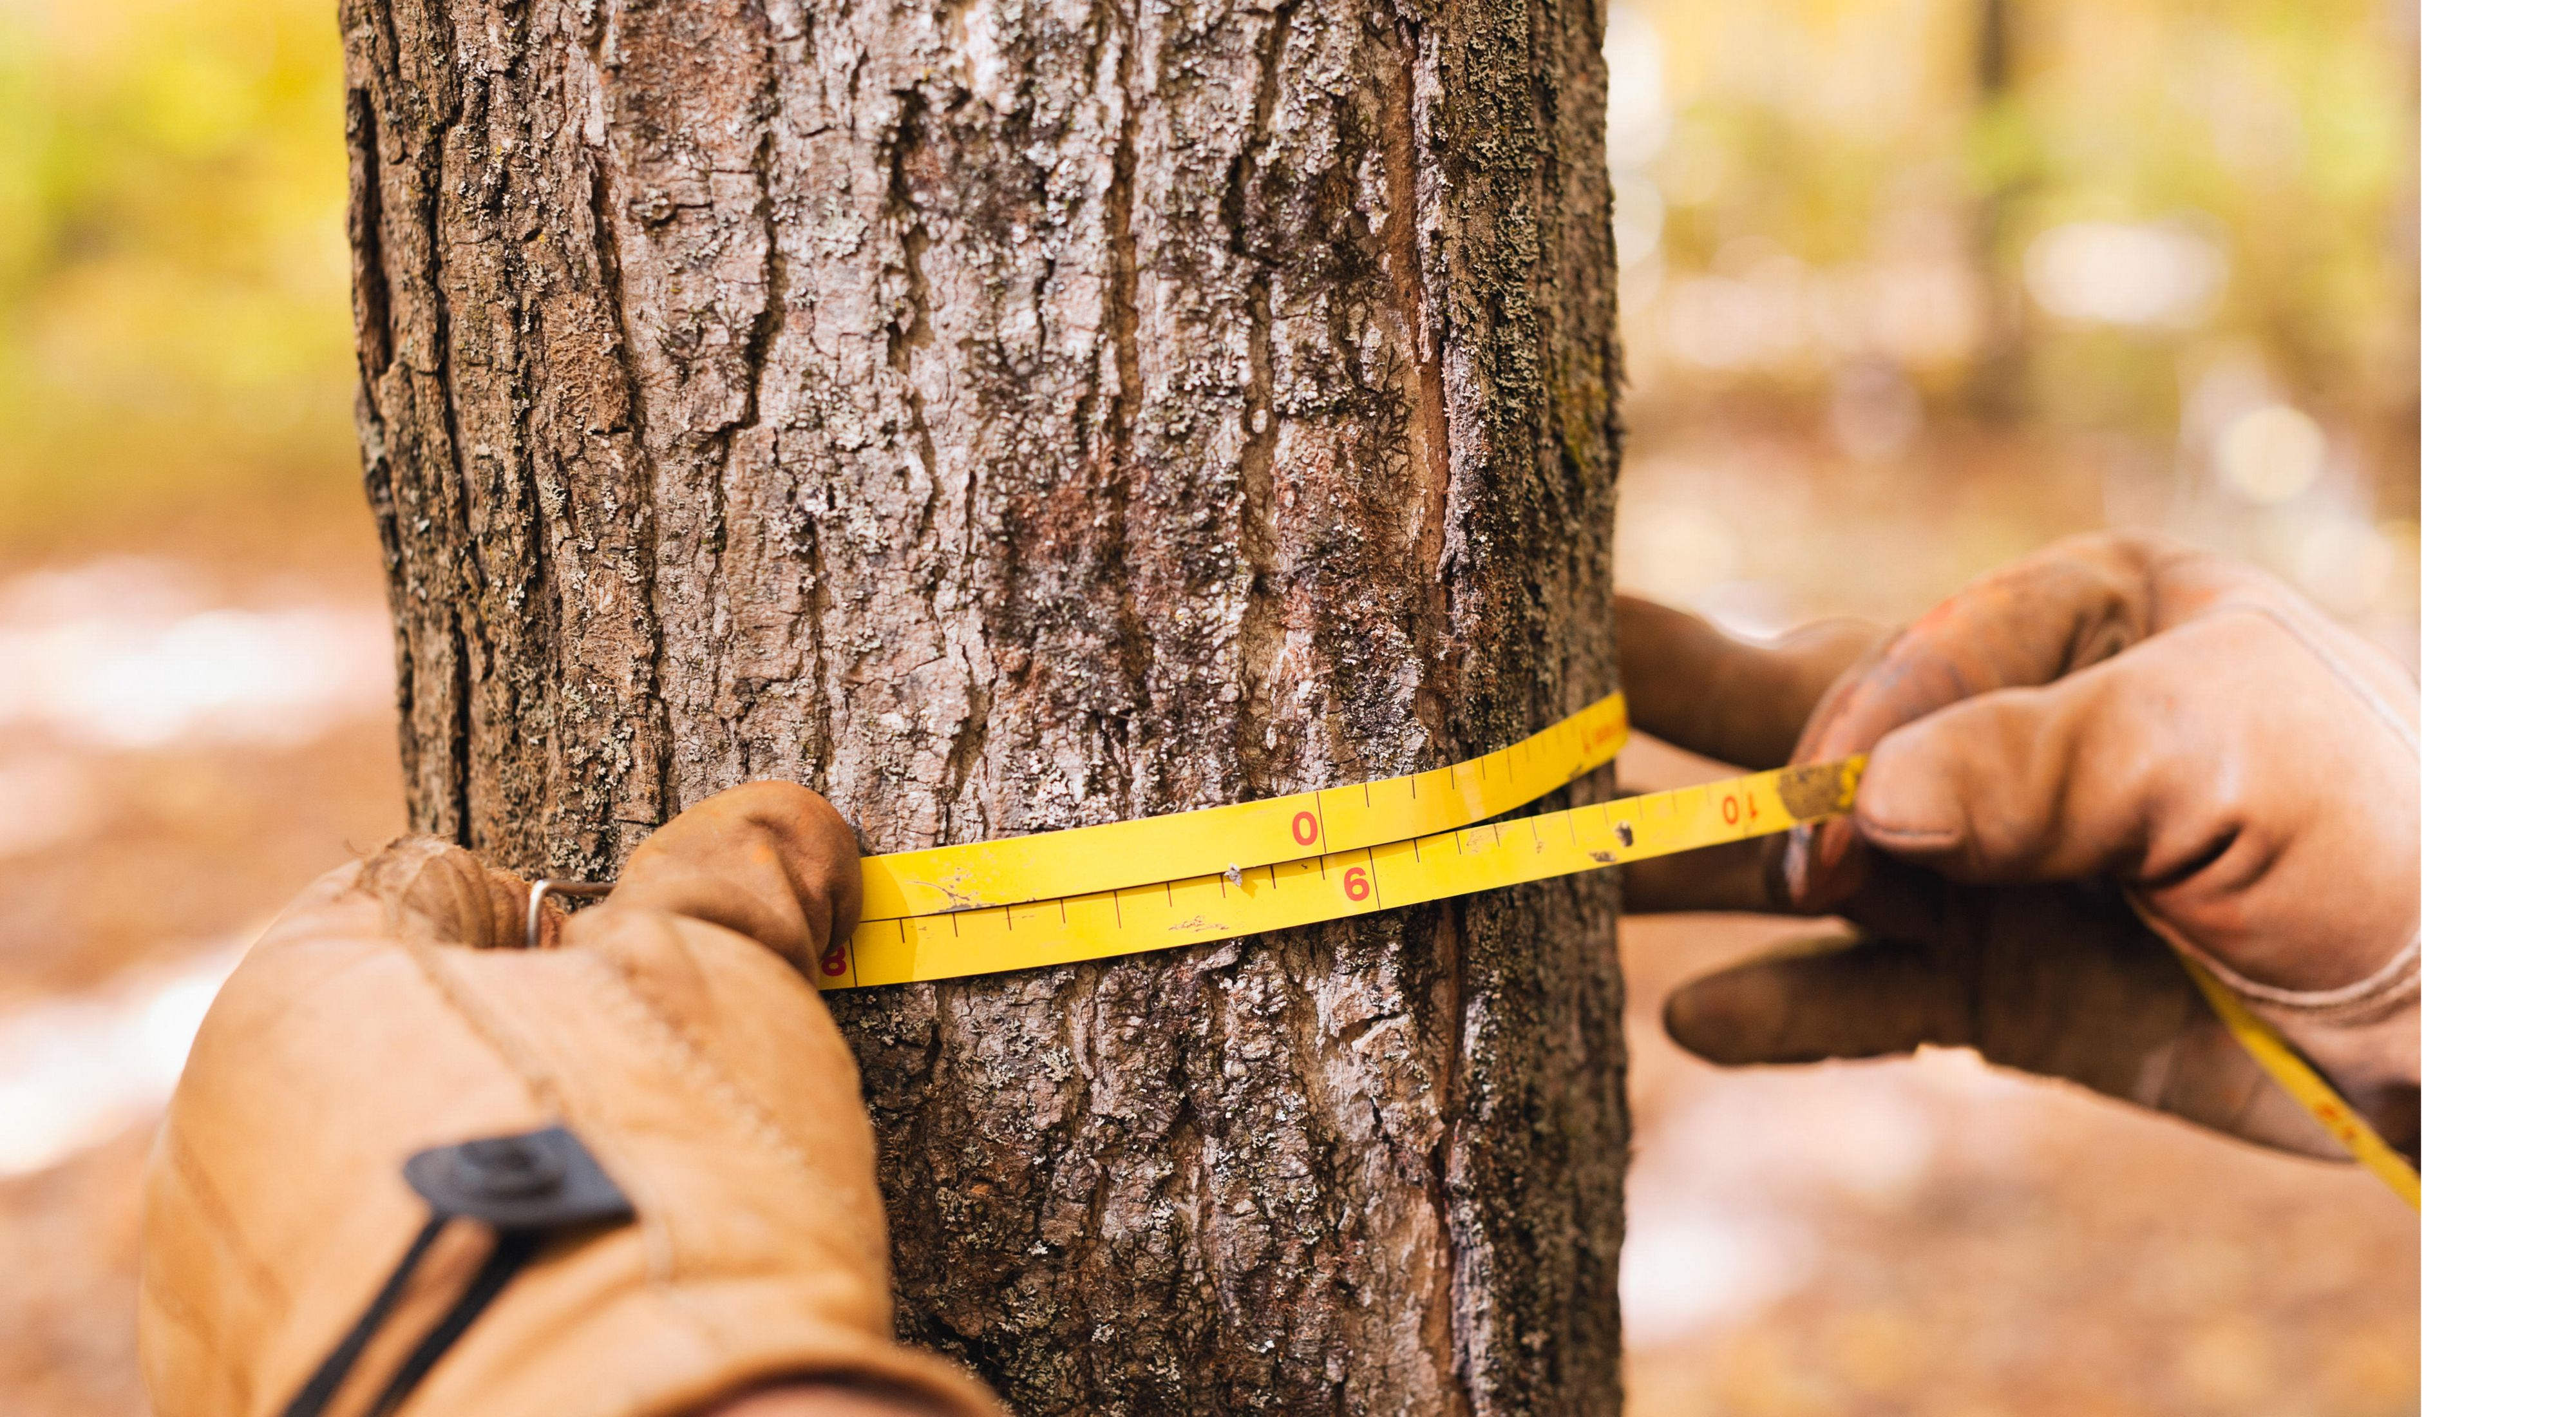 Two gloved hands wrap a measuring tape around a tree.